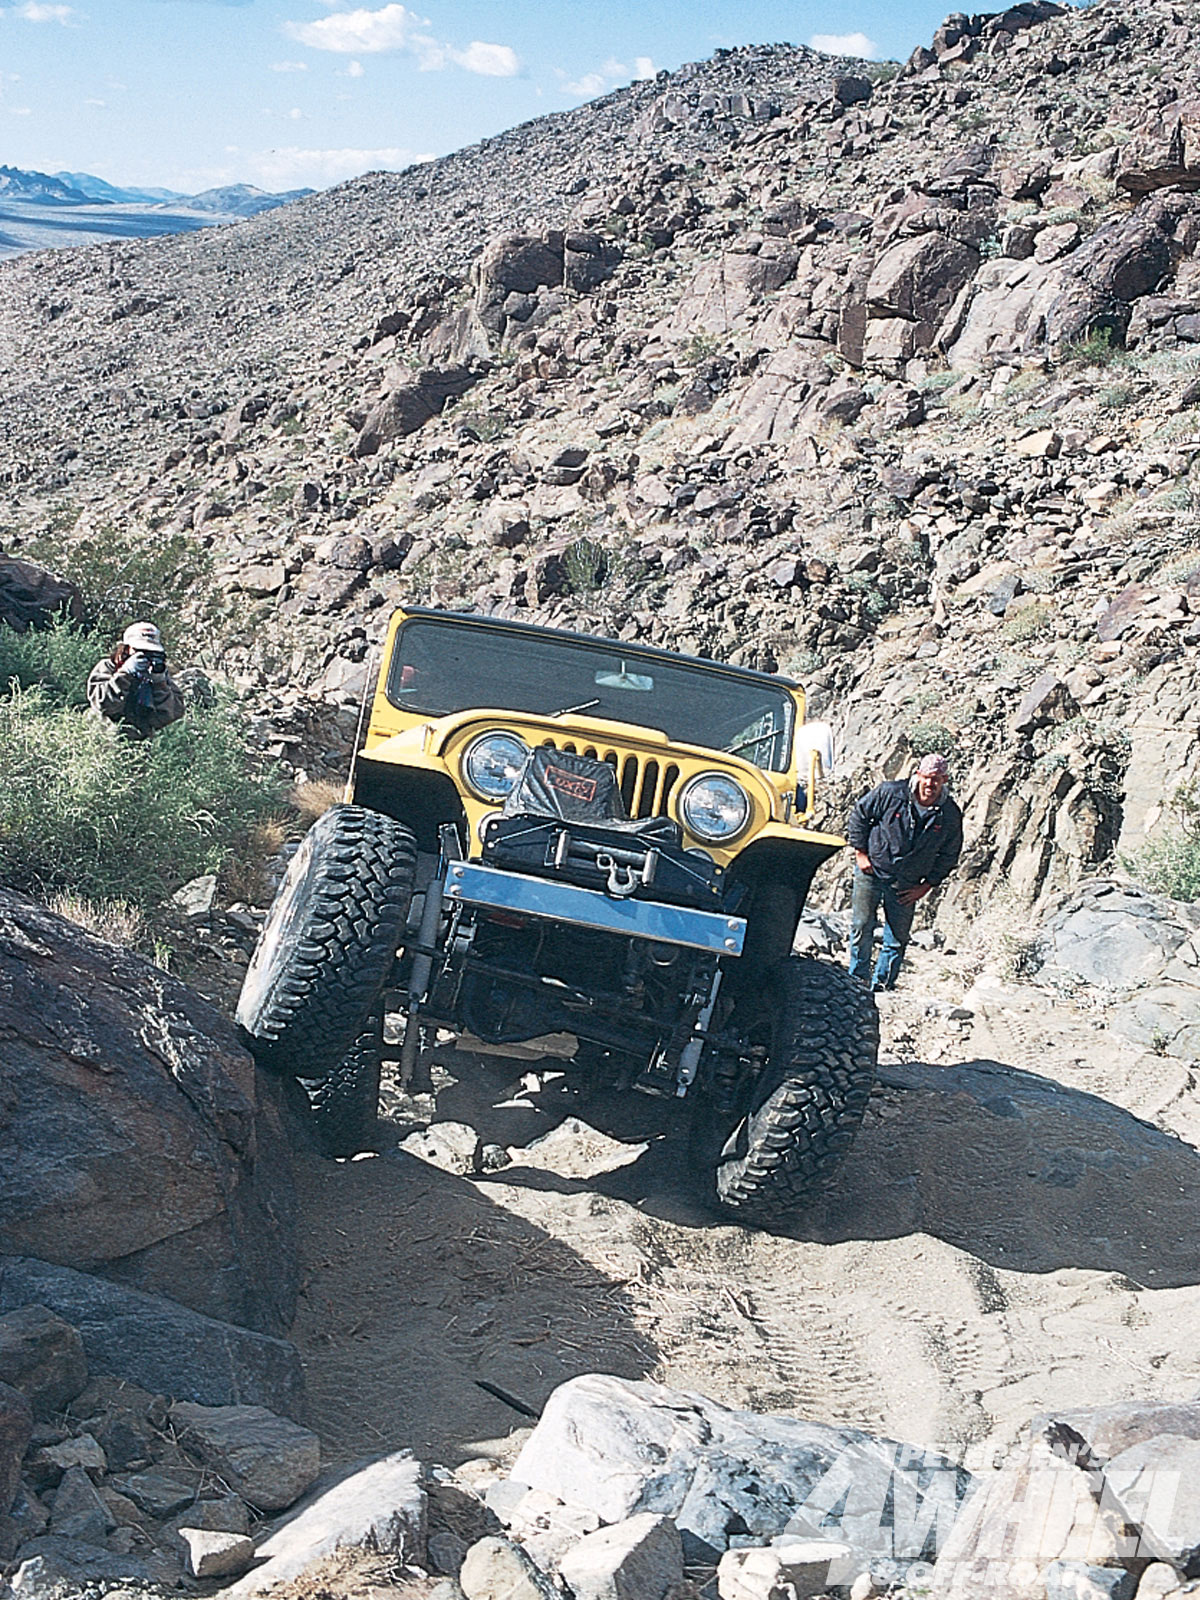 131 9802 02 o+131 9802 fun in the desert+yellow jeep cj front